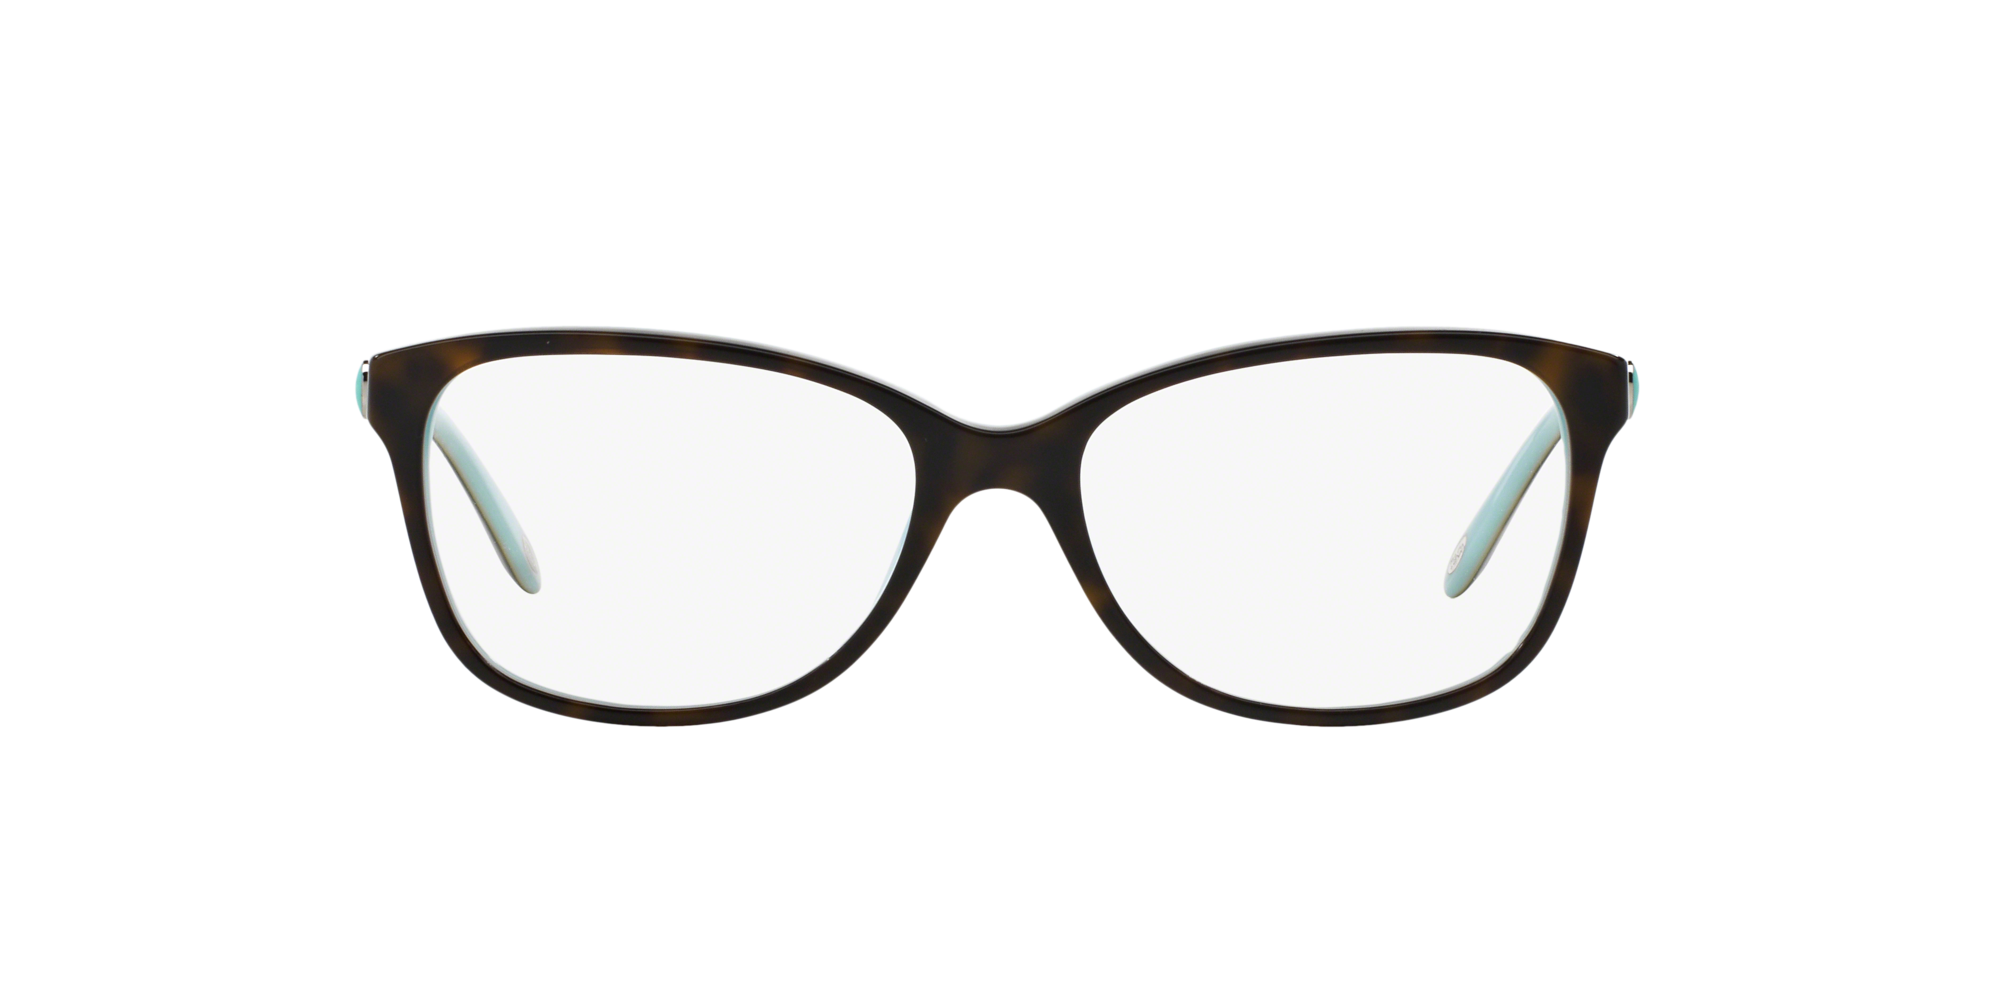 Image for TF2097 from LensCrafters | Glasses, Prescription Glasses Online, Eyewear